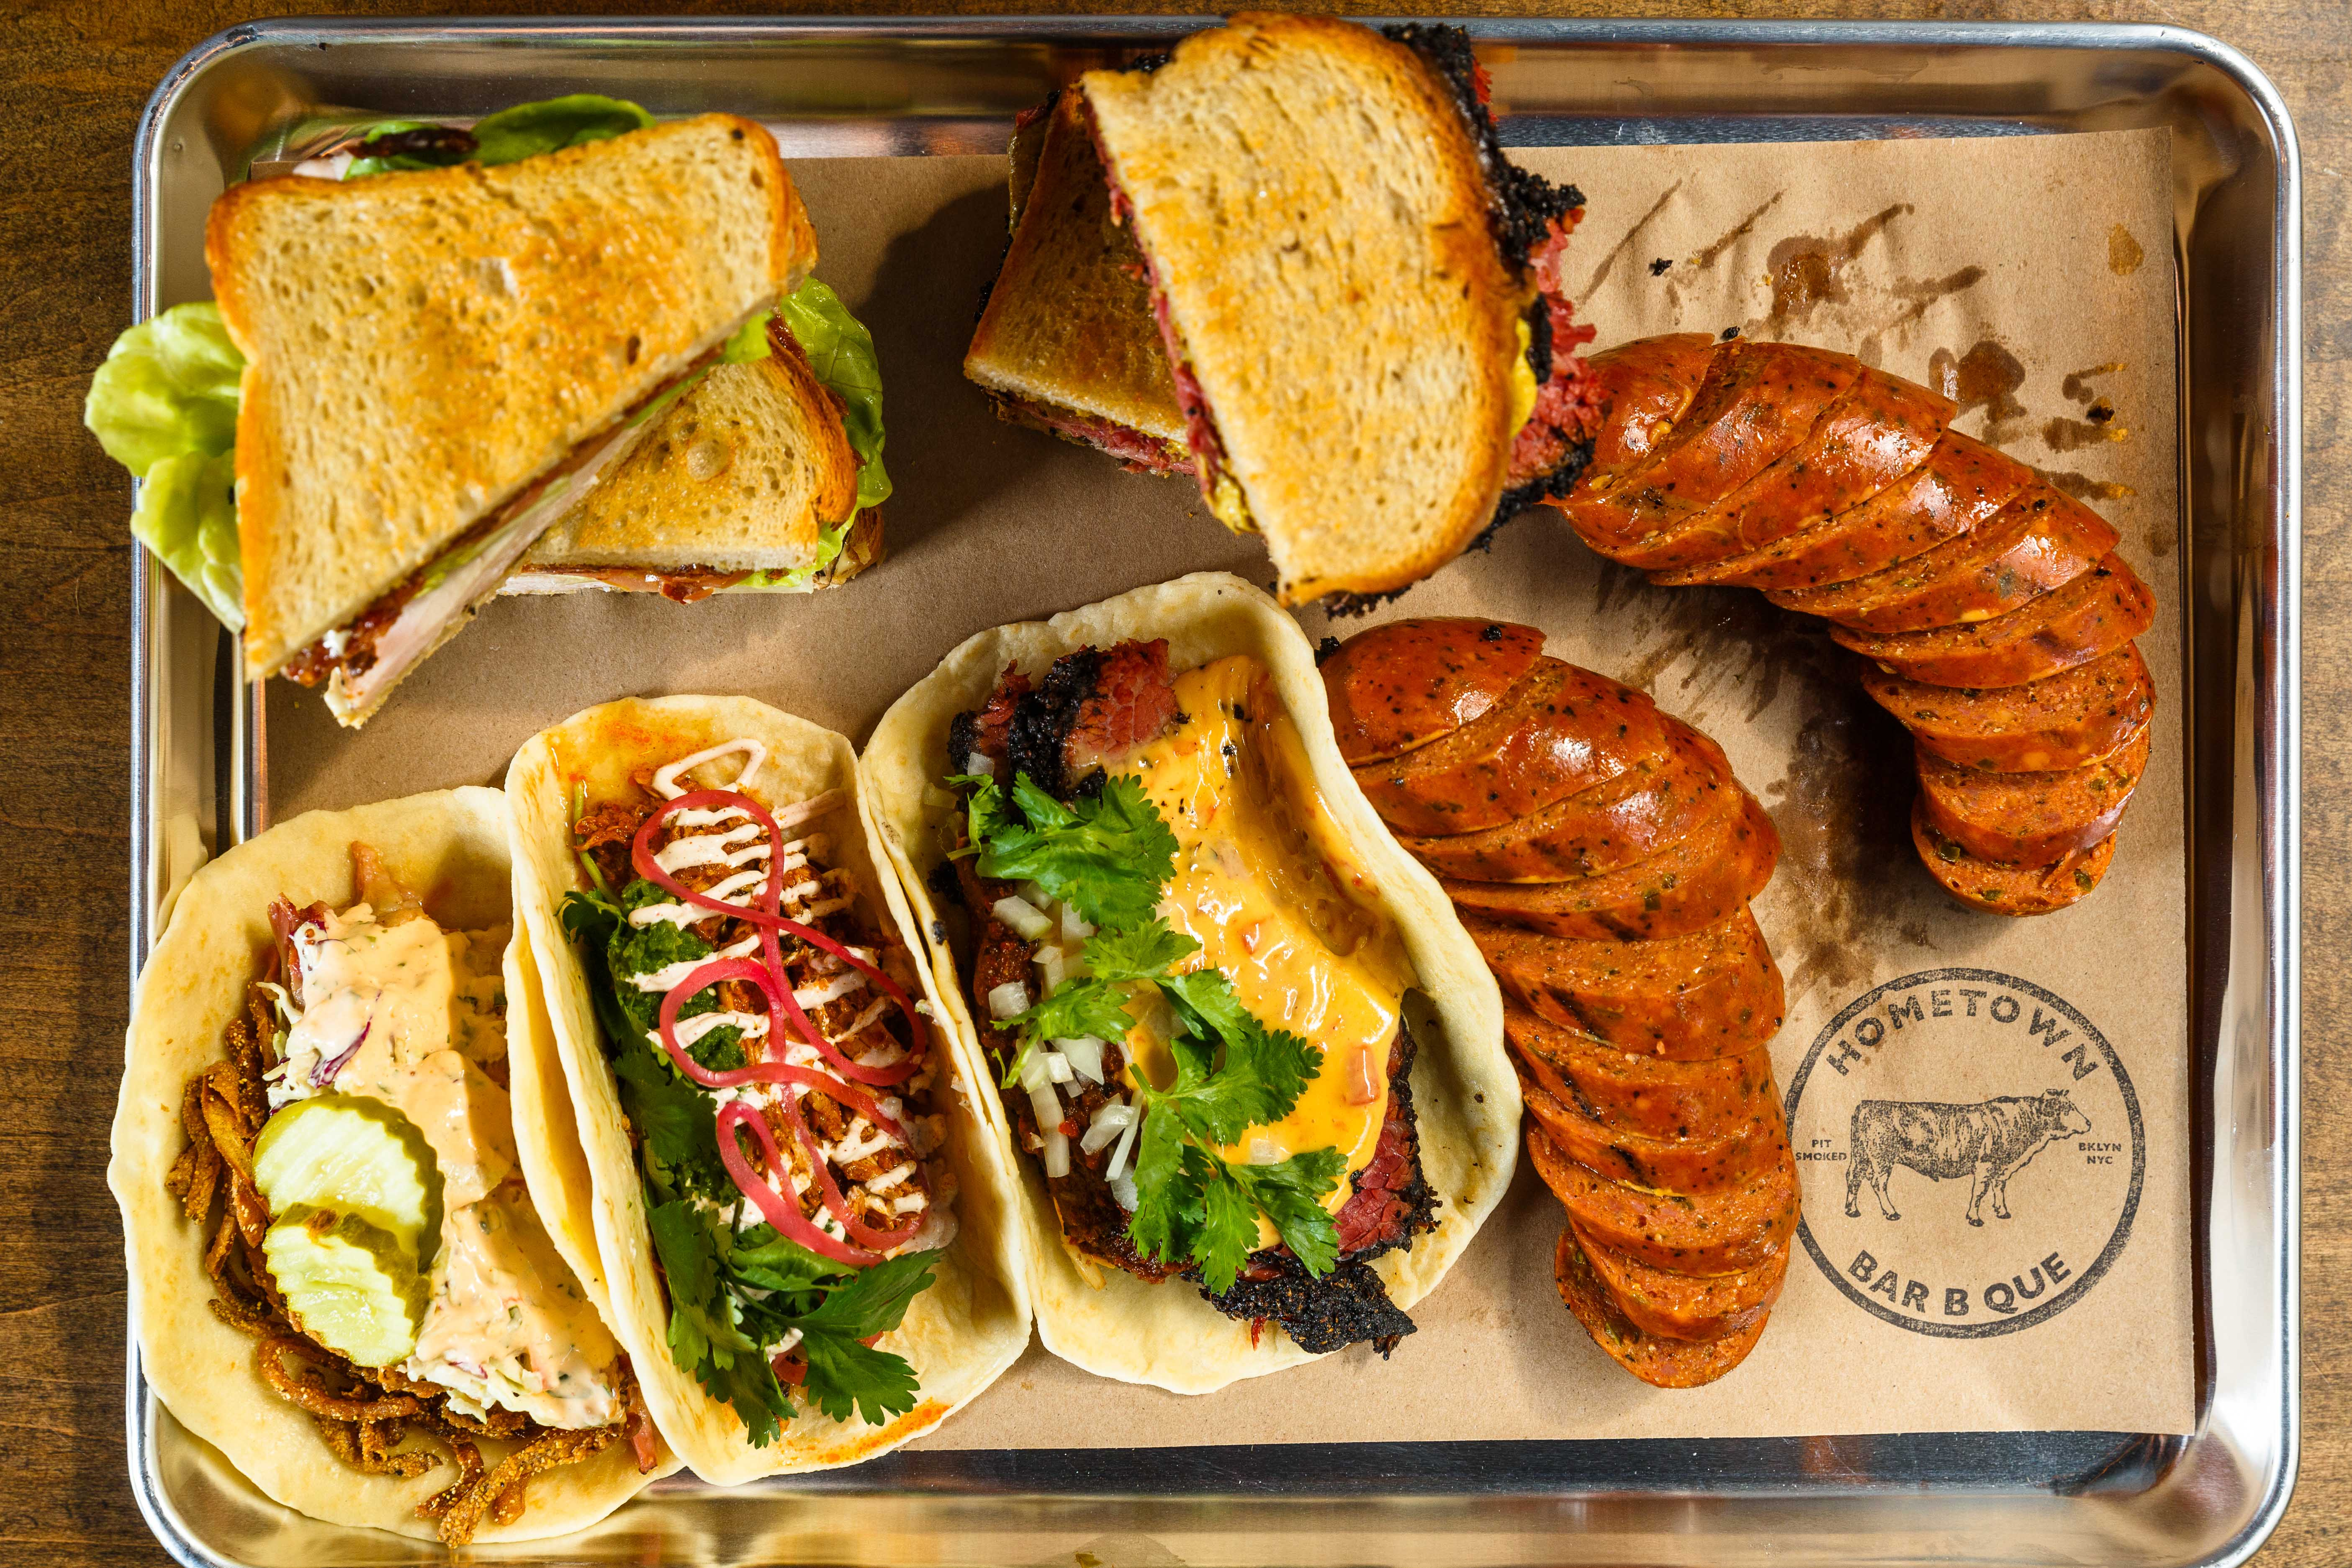 Three tacos, a turkey club, a pastrami sandwich, and sausage on a metal tray